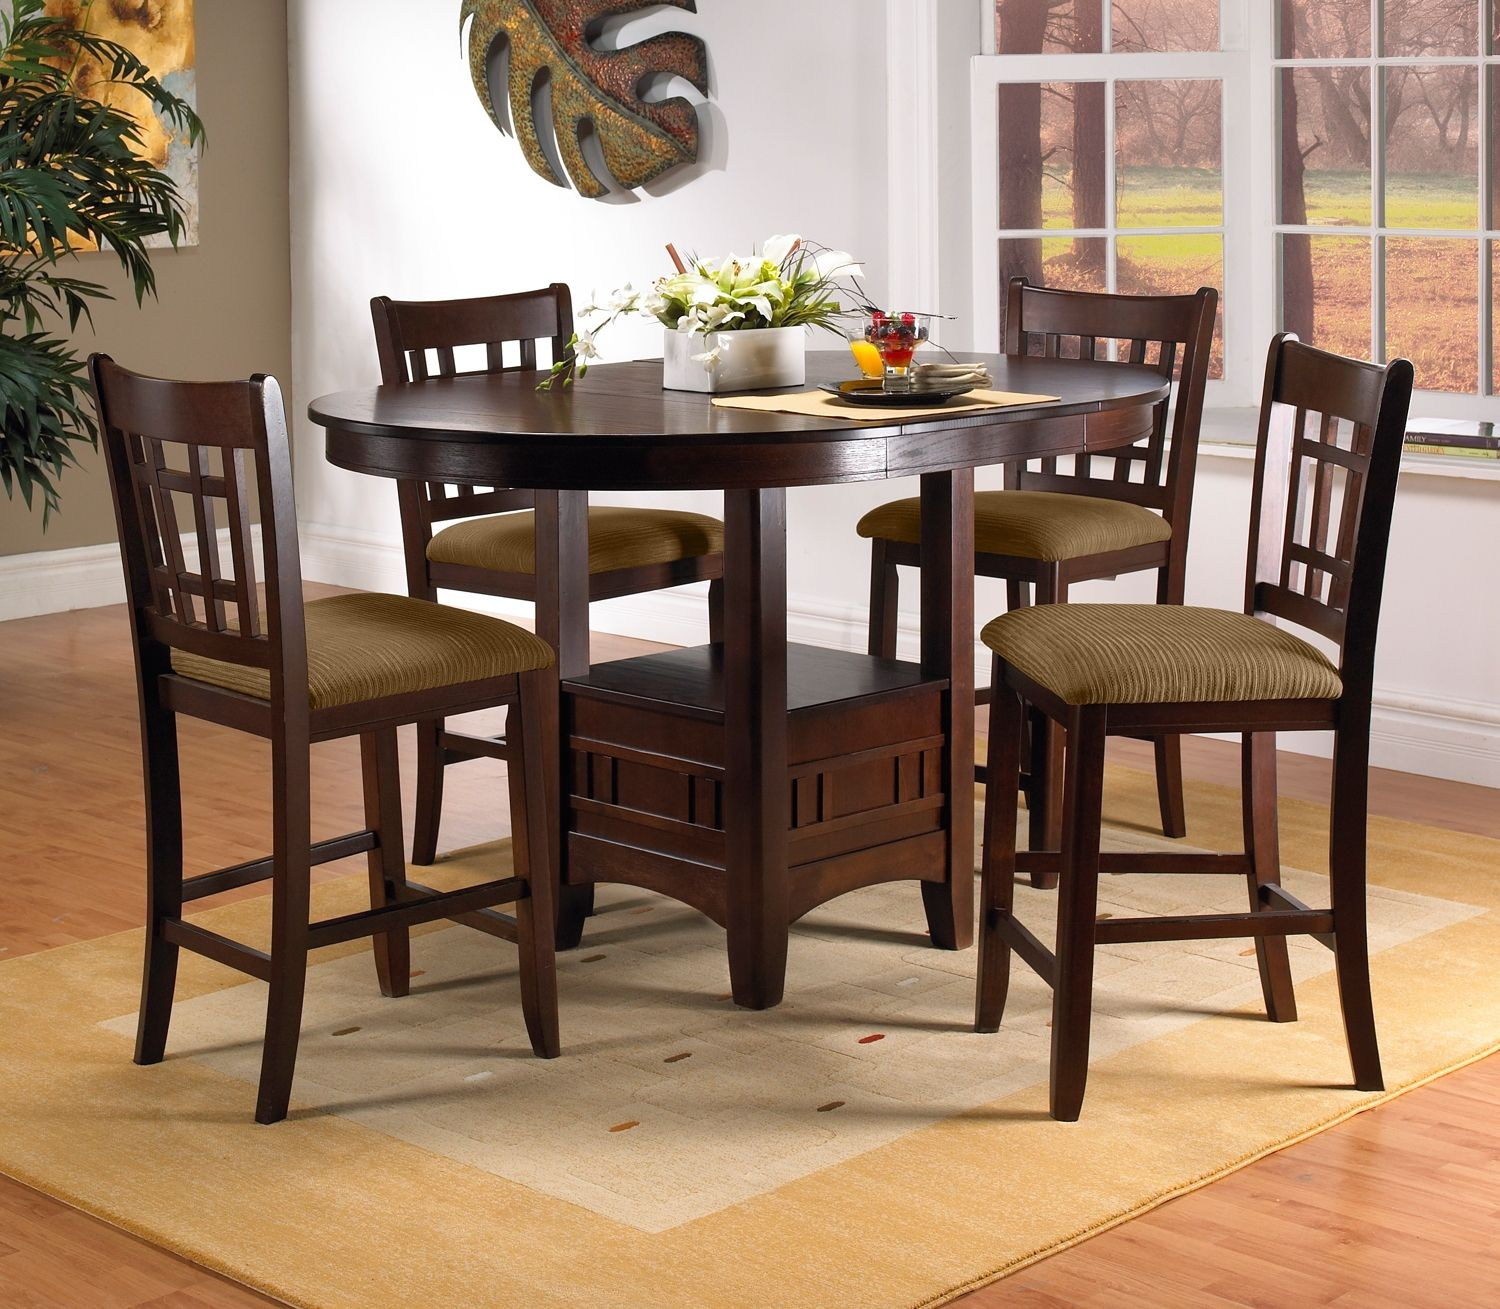 Room And Board Dining Chairs: Casual Dining Room Furniture-The Brighton II Collection